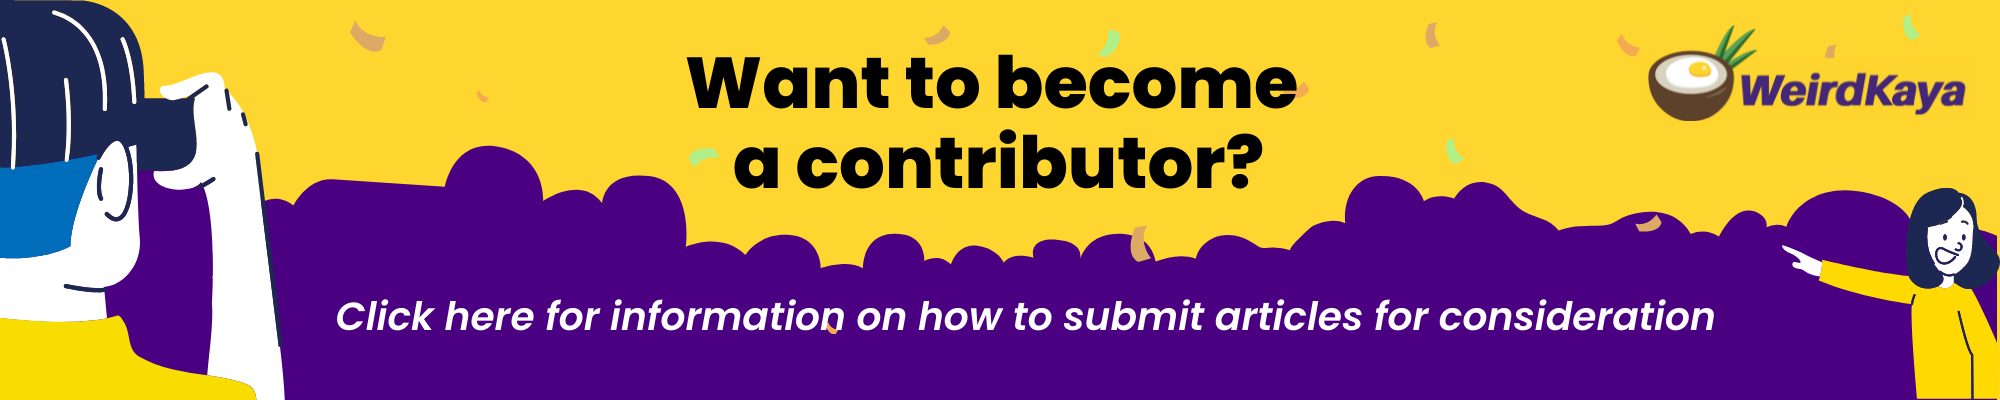 Want to become a contributor on weirdkaya?